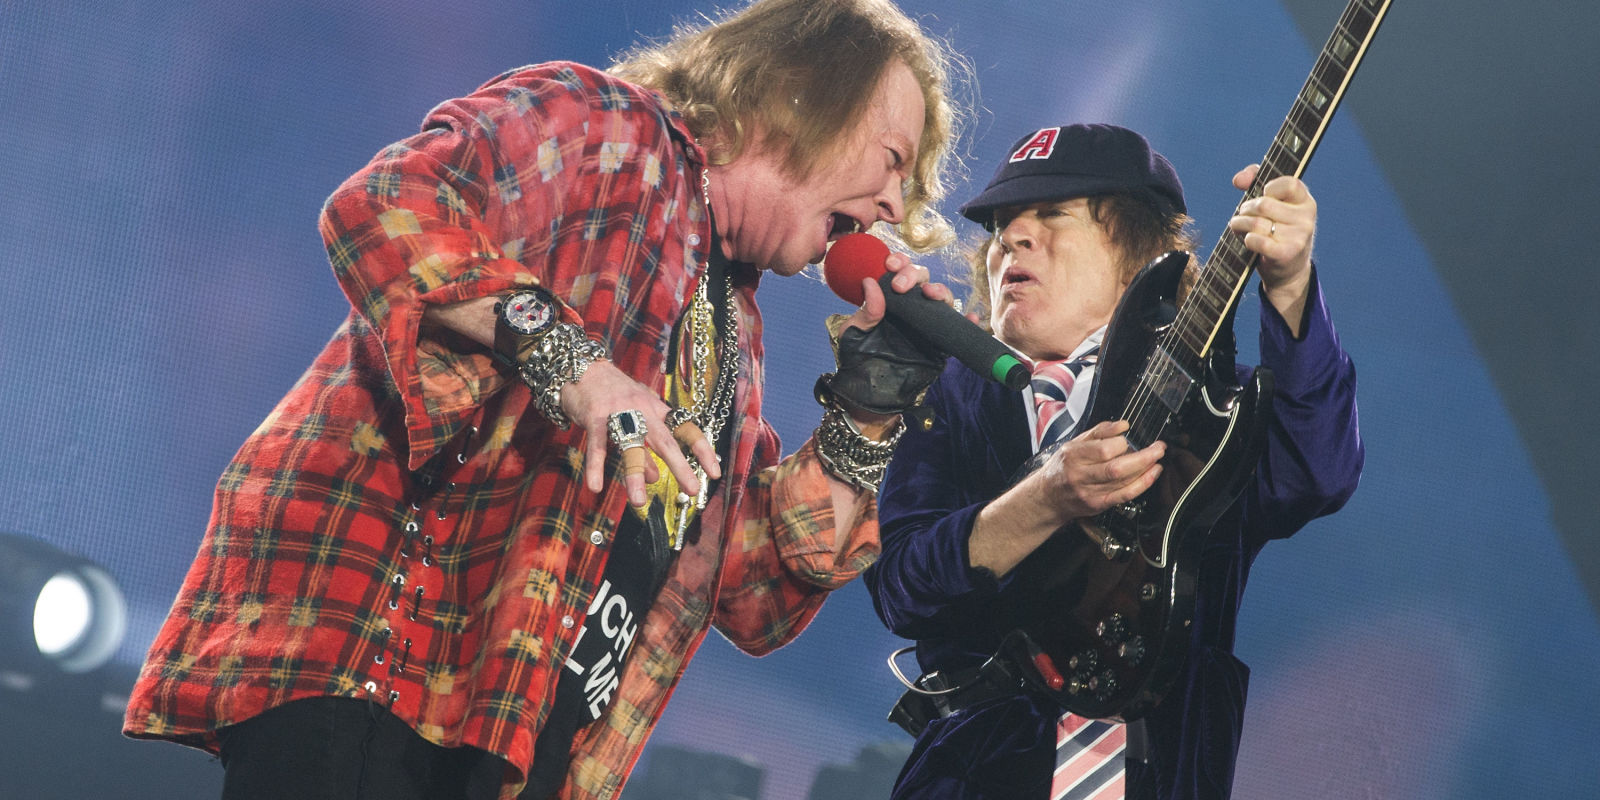 Ac Dc And Axl Rose Play The First Ever Show At London S